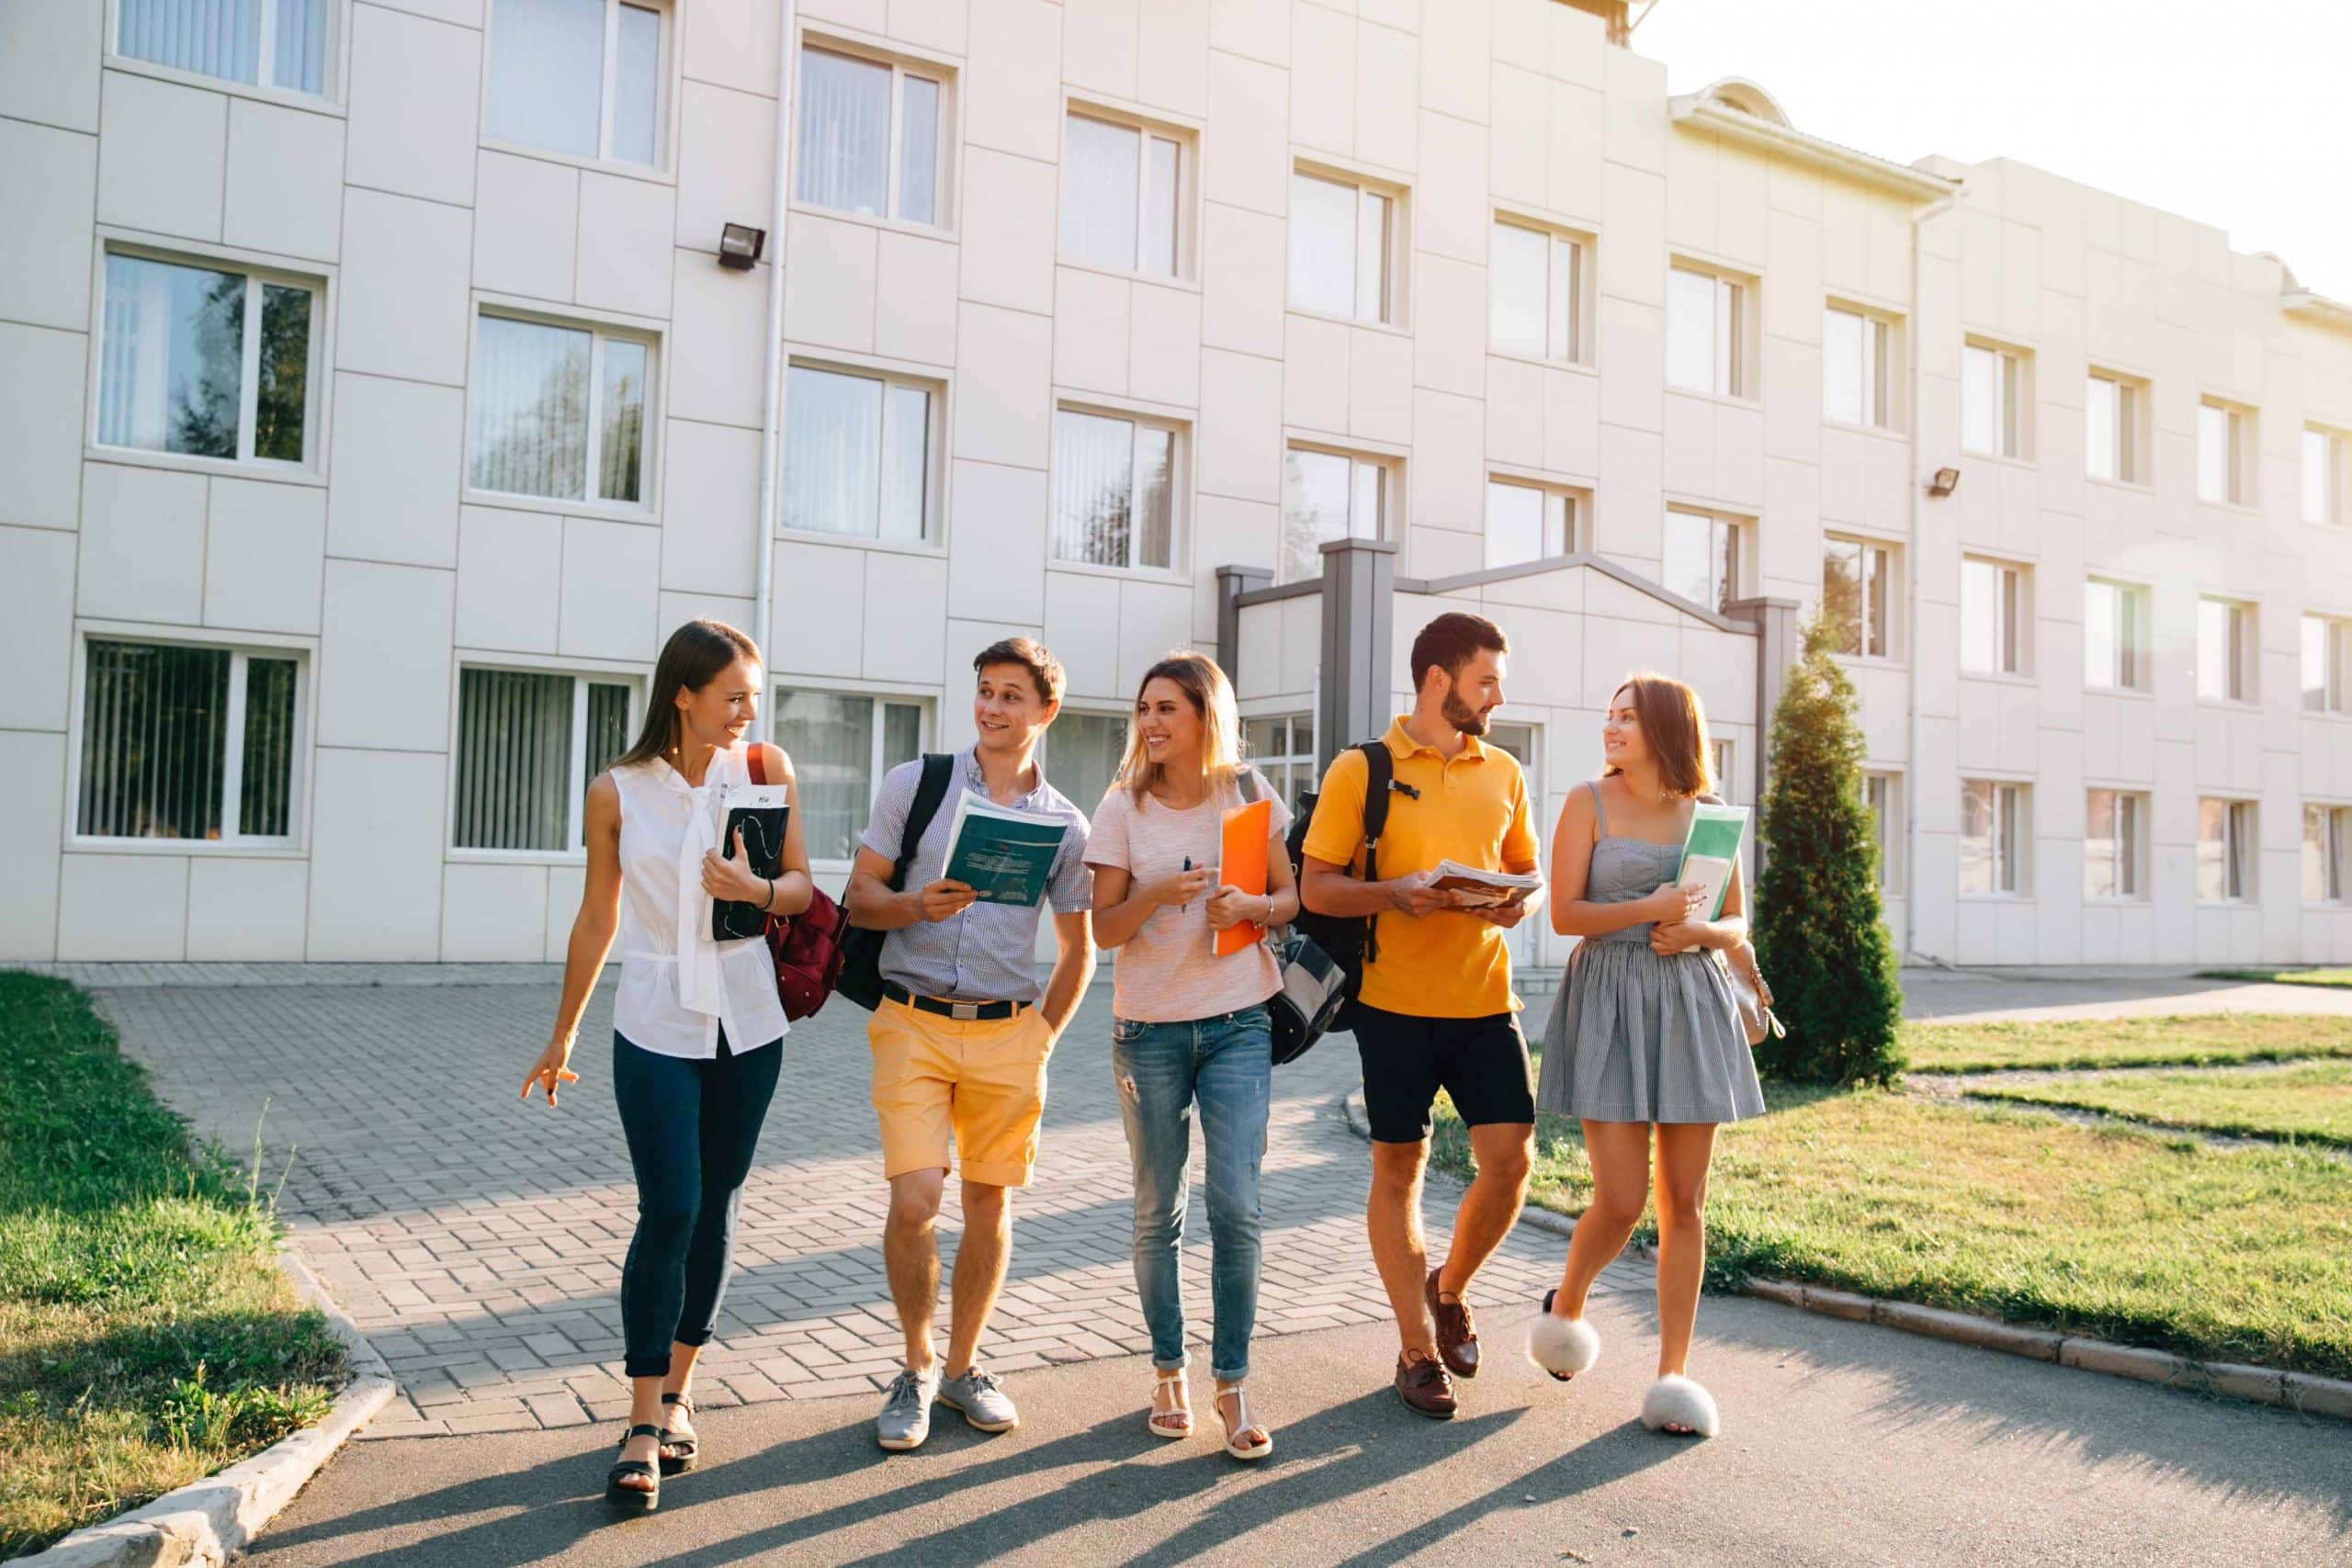 free time students bachelor s campus life rhythm five friendly students are walking